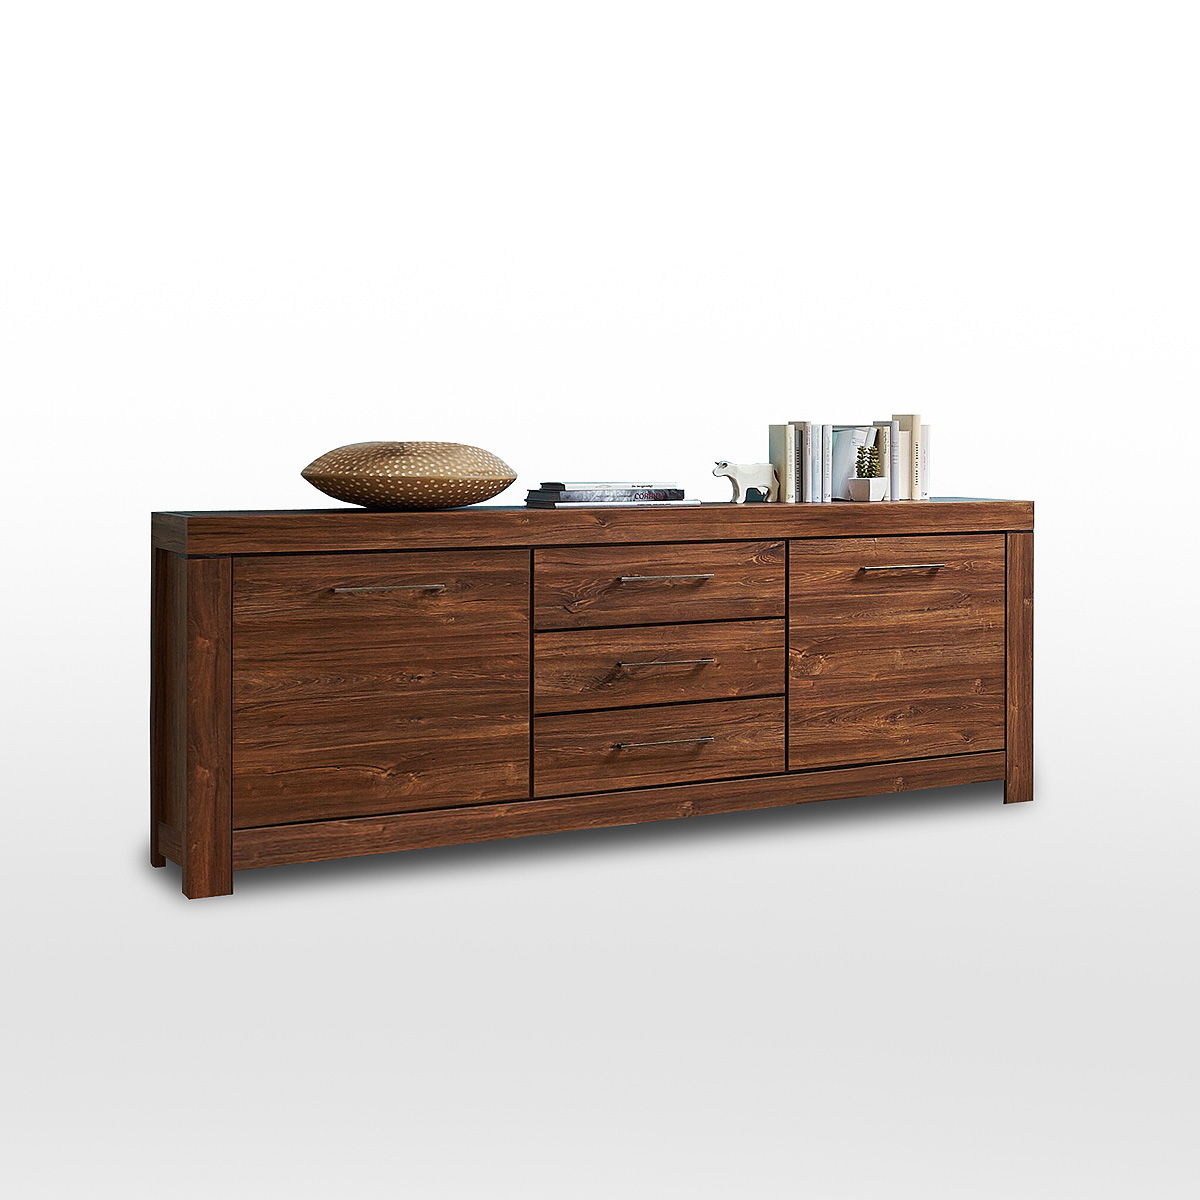 sideboard gent kommode anrichte schrank in akazie dunkel 200 cm ebay. Black Bedroom Furniture Sets. Home Design Ideas